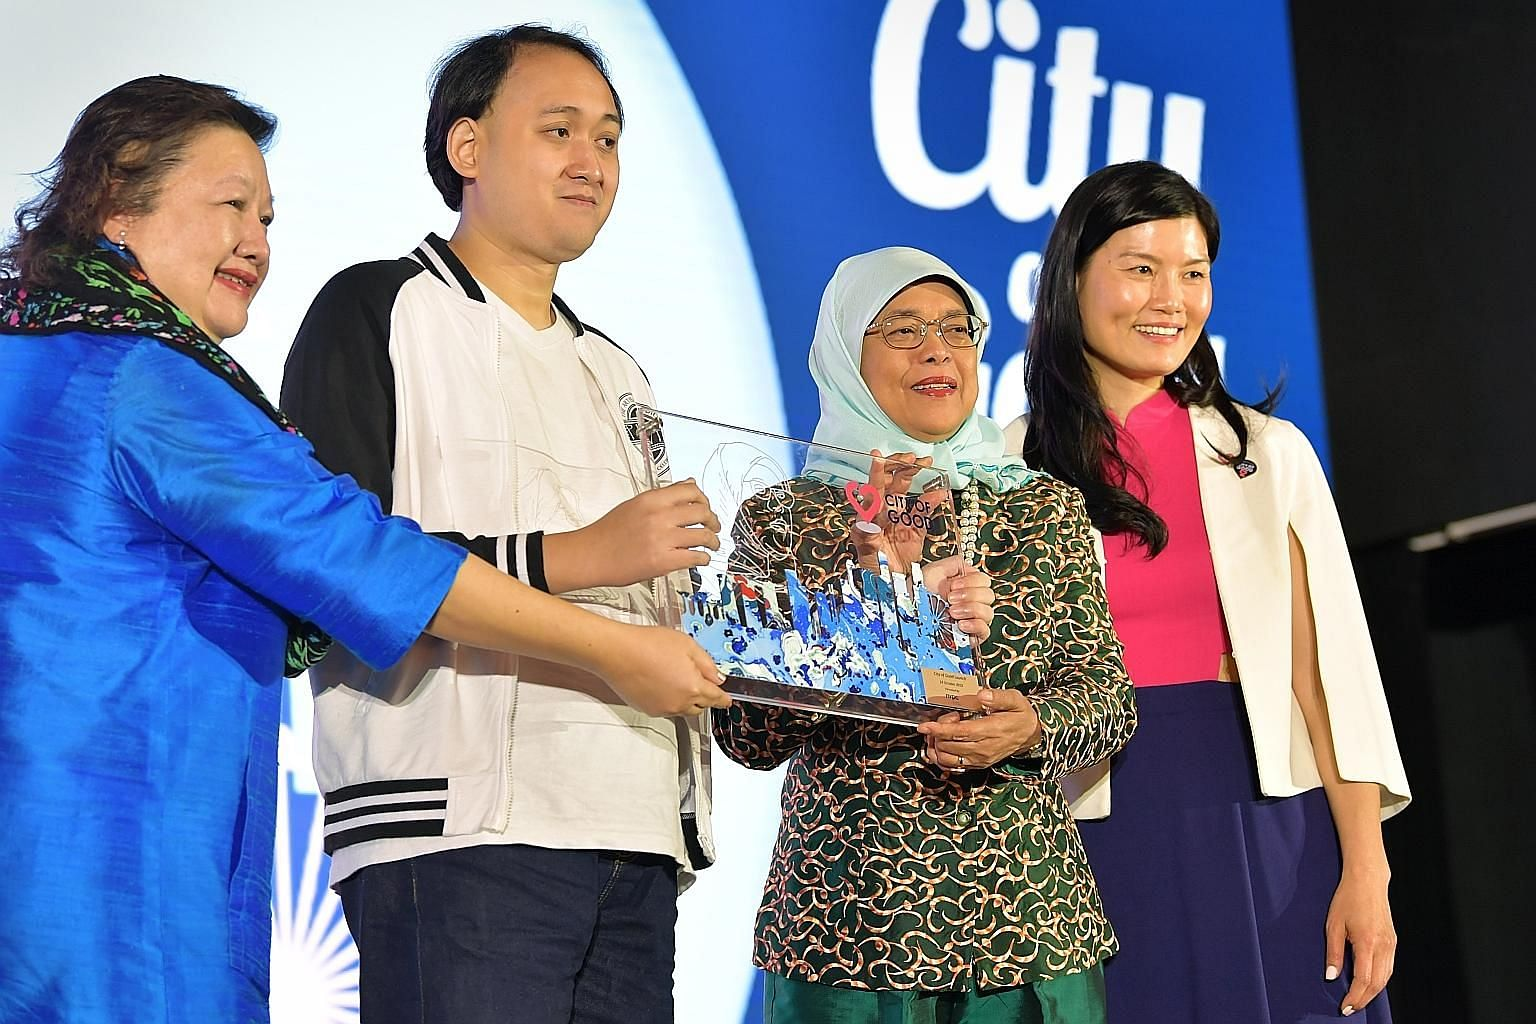 Mr Faris Wong, an artisan from social enterprise Personalised Love, presenting a token of appreciation that he worked on with two others to President Halimah Yacob at the launch of the National Volunteer and Philanthropy Centre's new vision yesterday